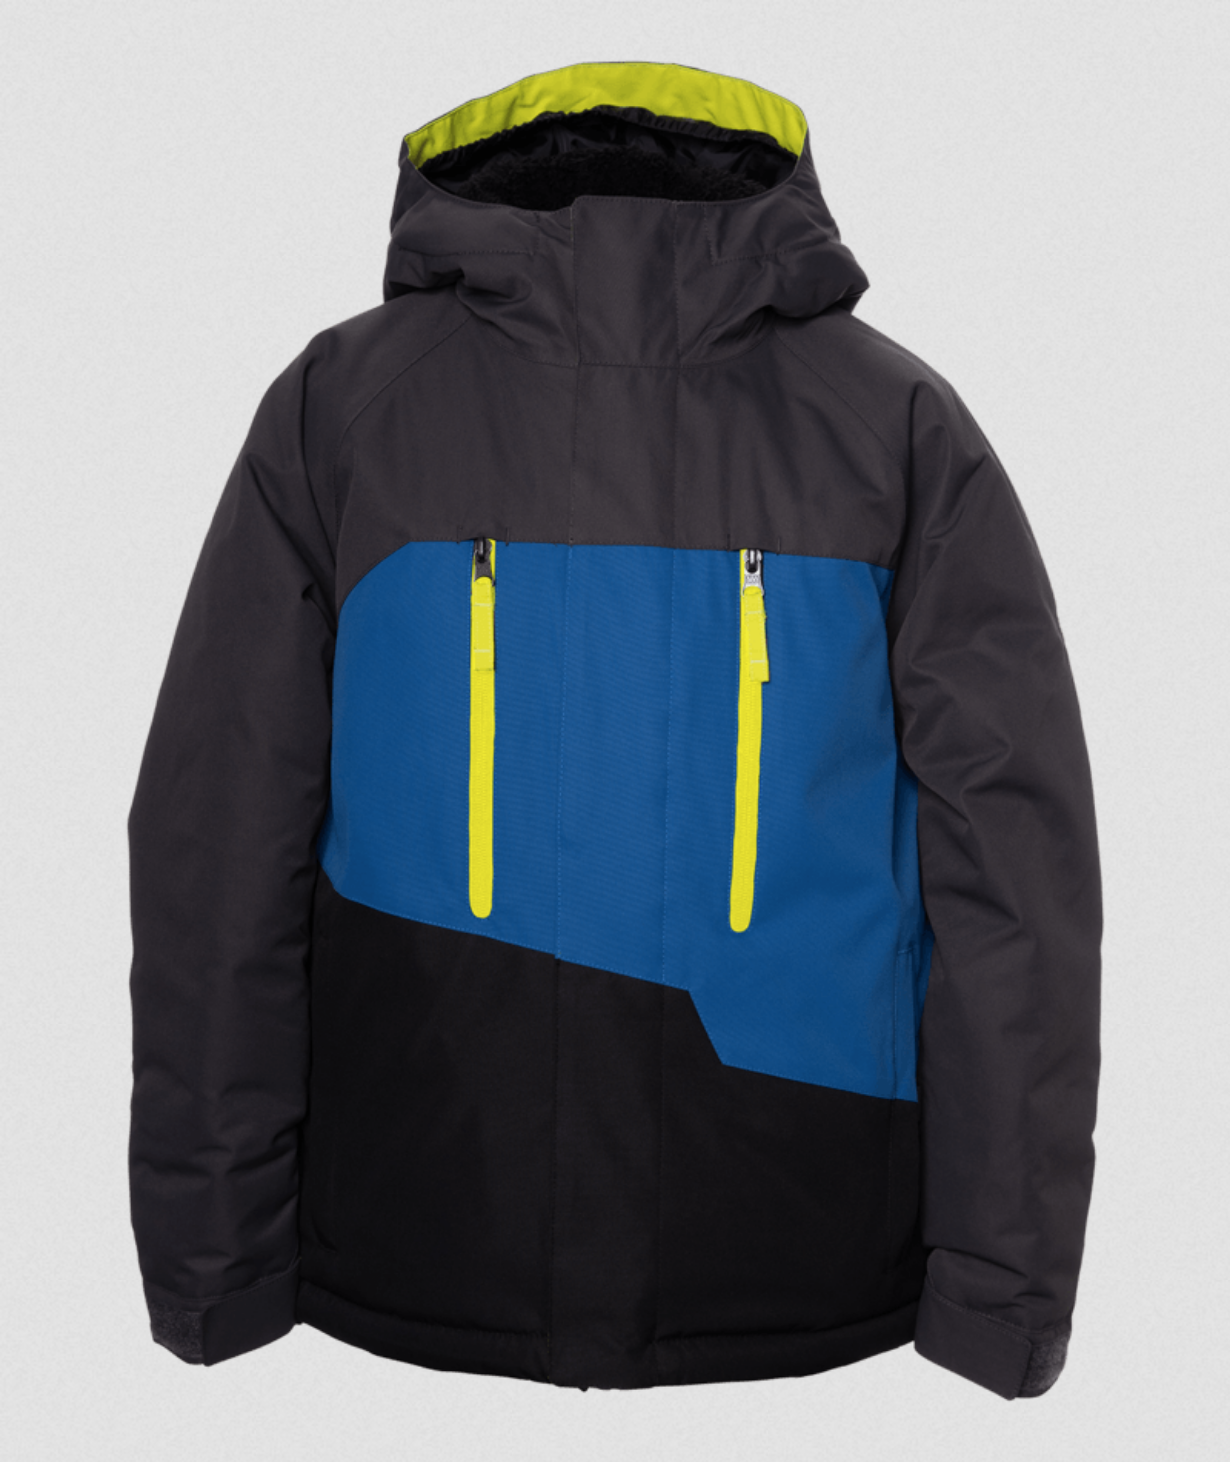 686 Boys Geo insulated Snow Jacket - Charcoal Colorblock